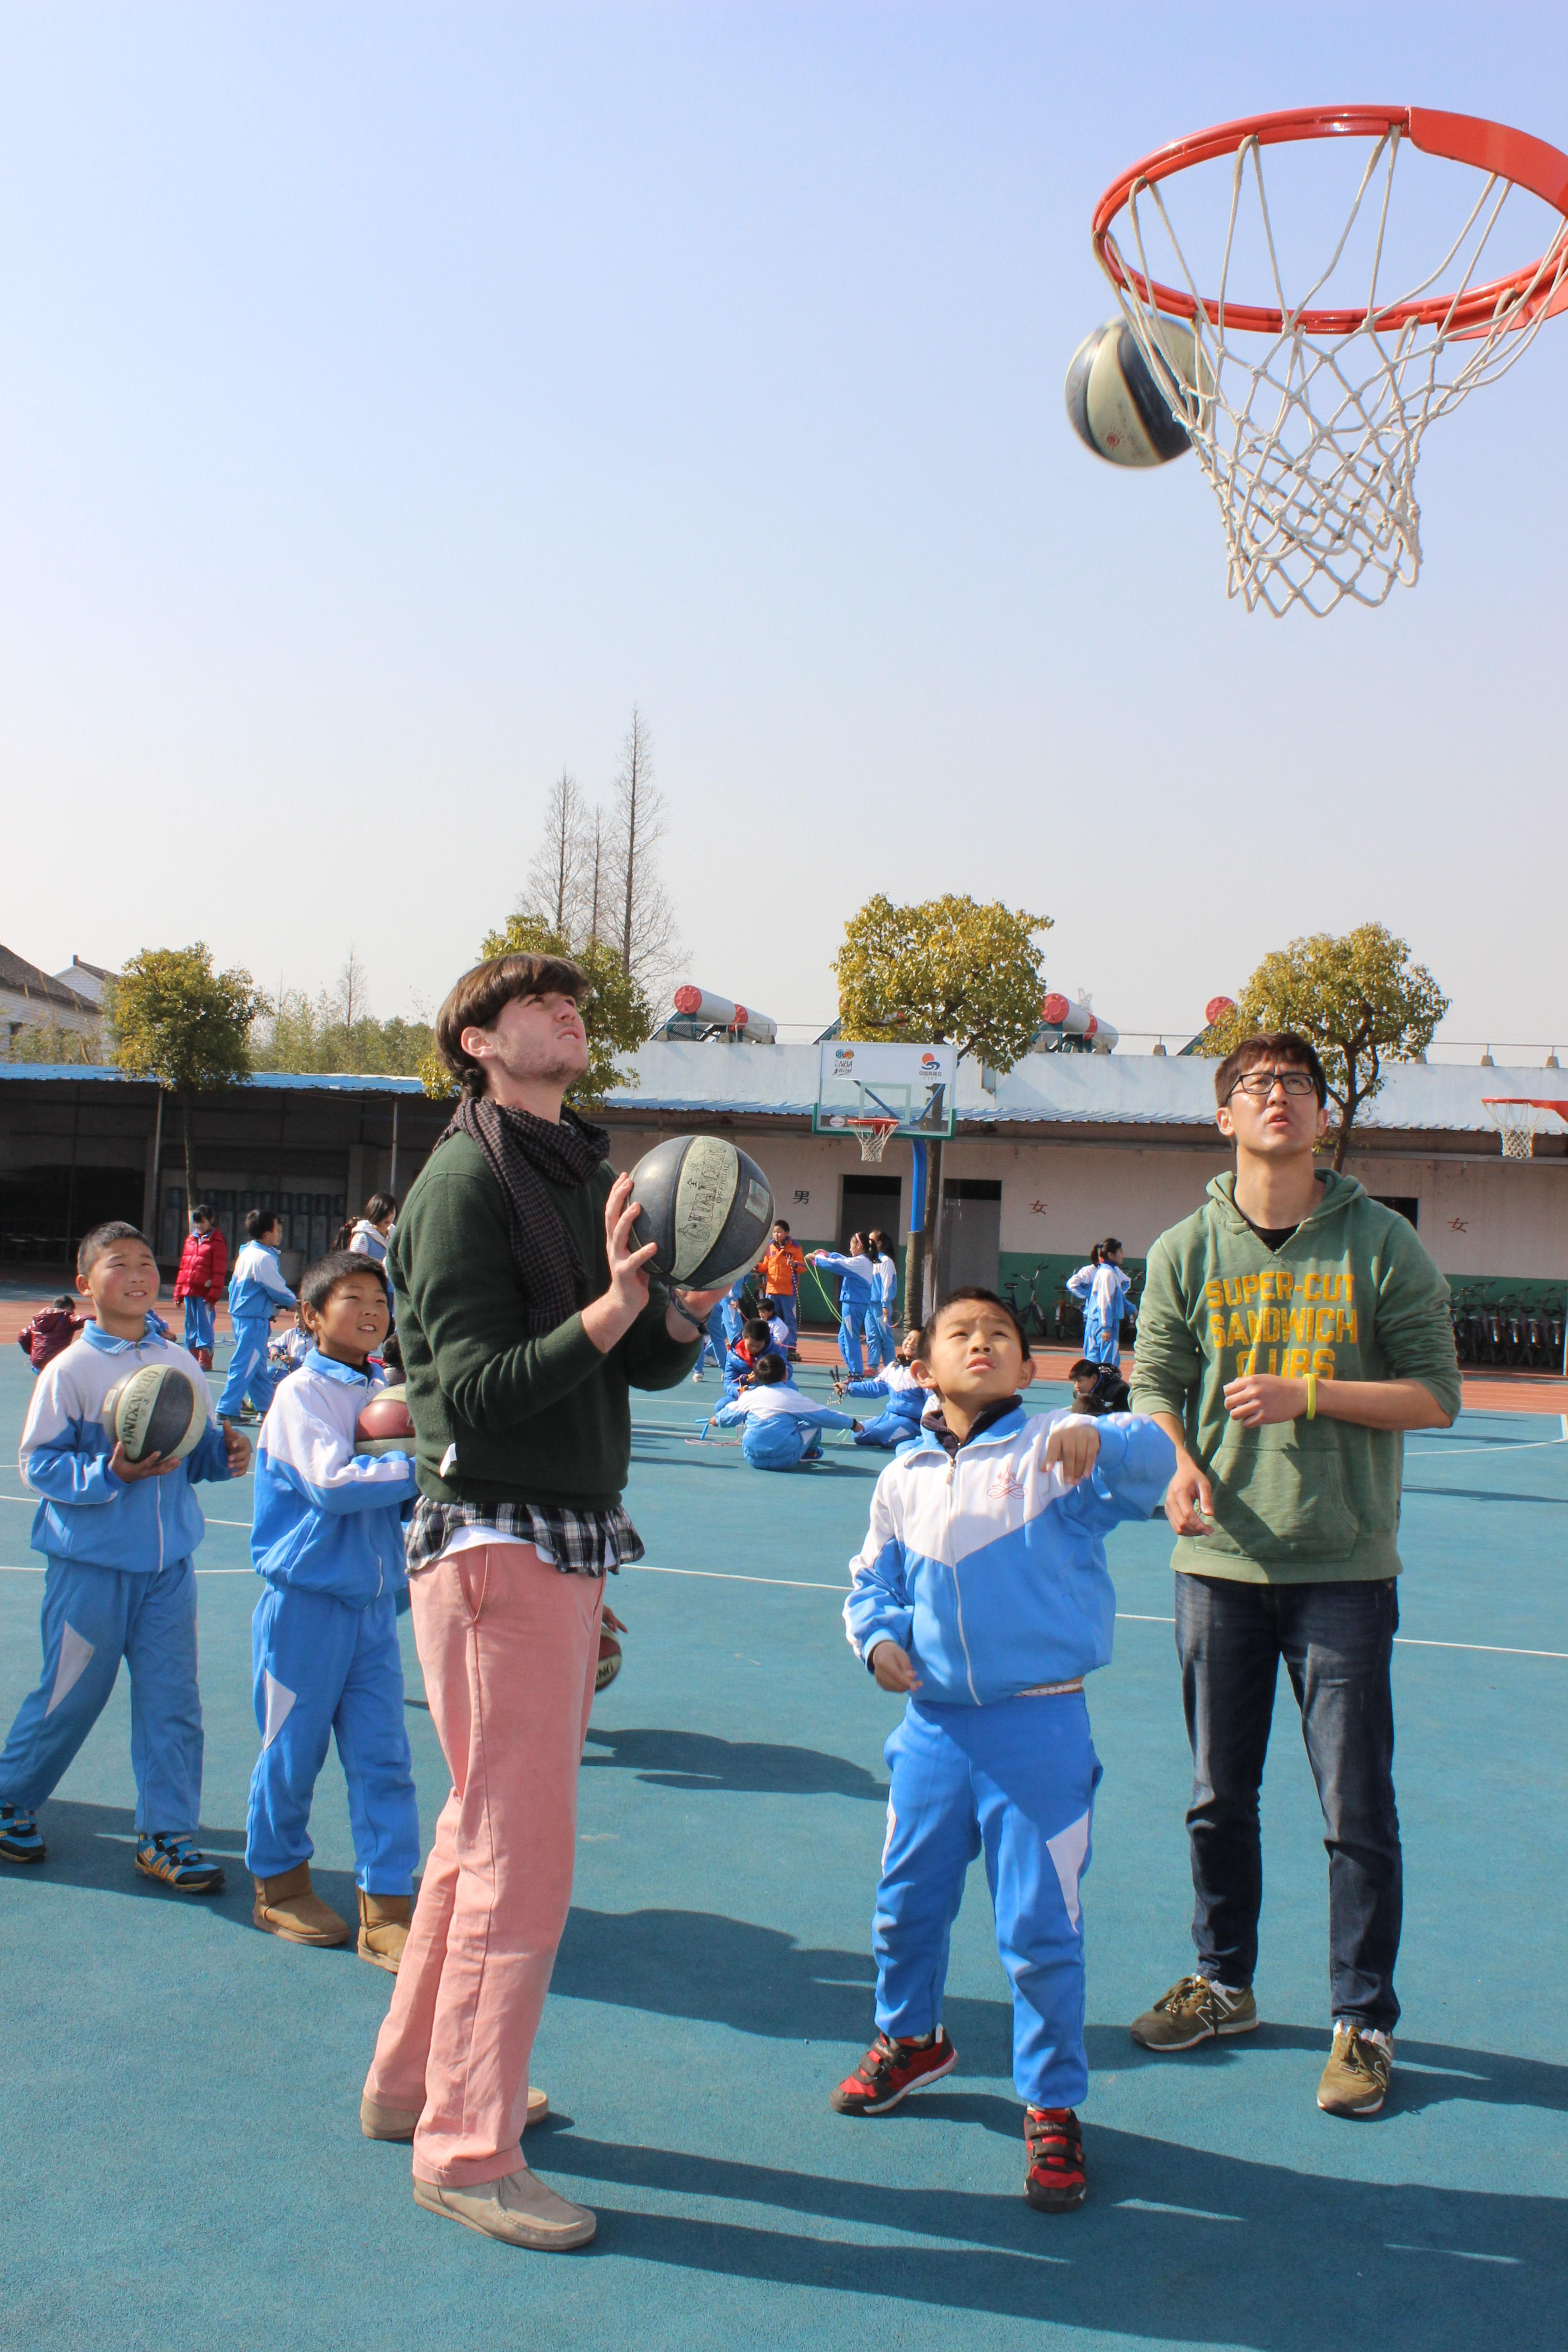 While learning Mandarin in China, a student also volunteers in local school and coaches sports lessons.